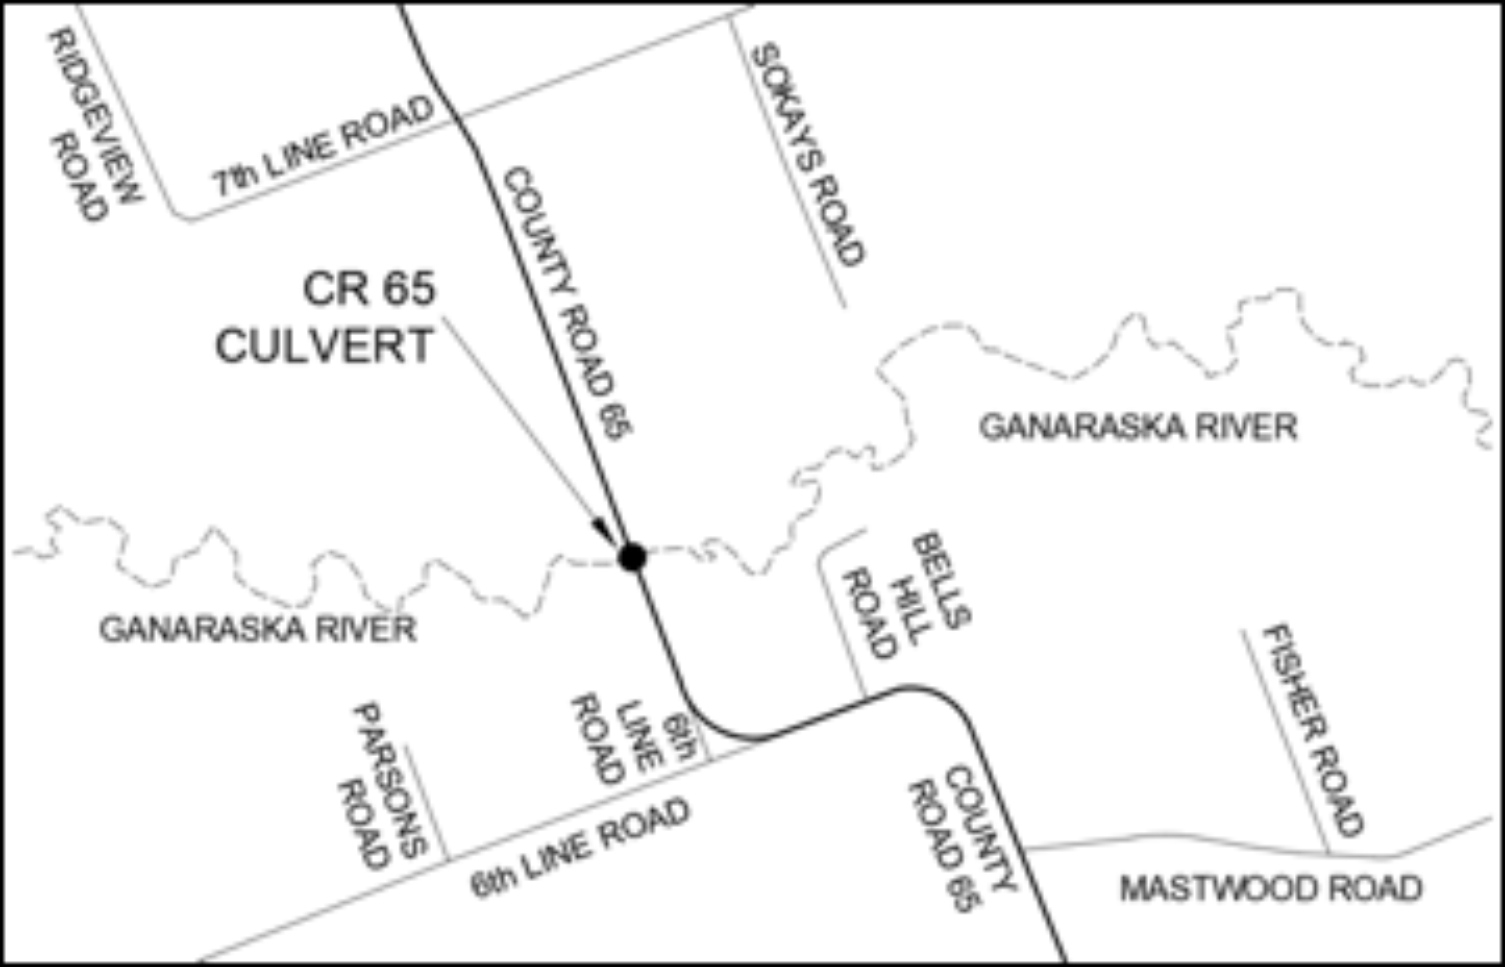 Map of County Road 65 culvert location